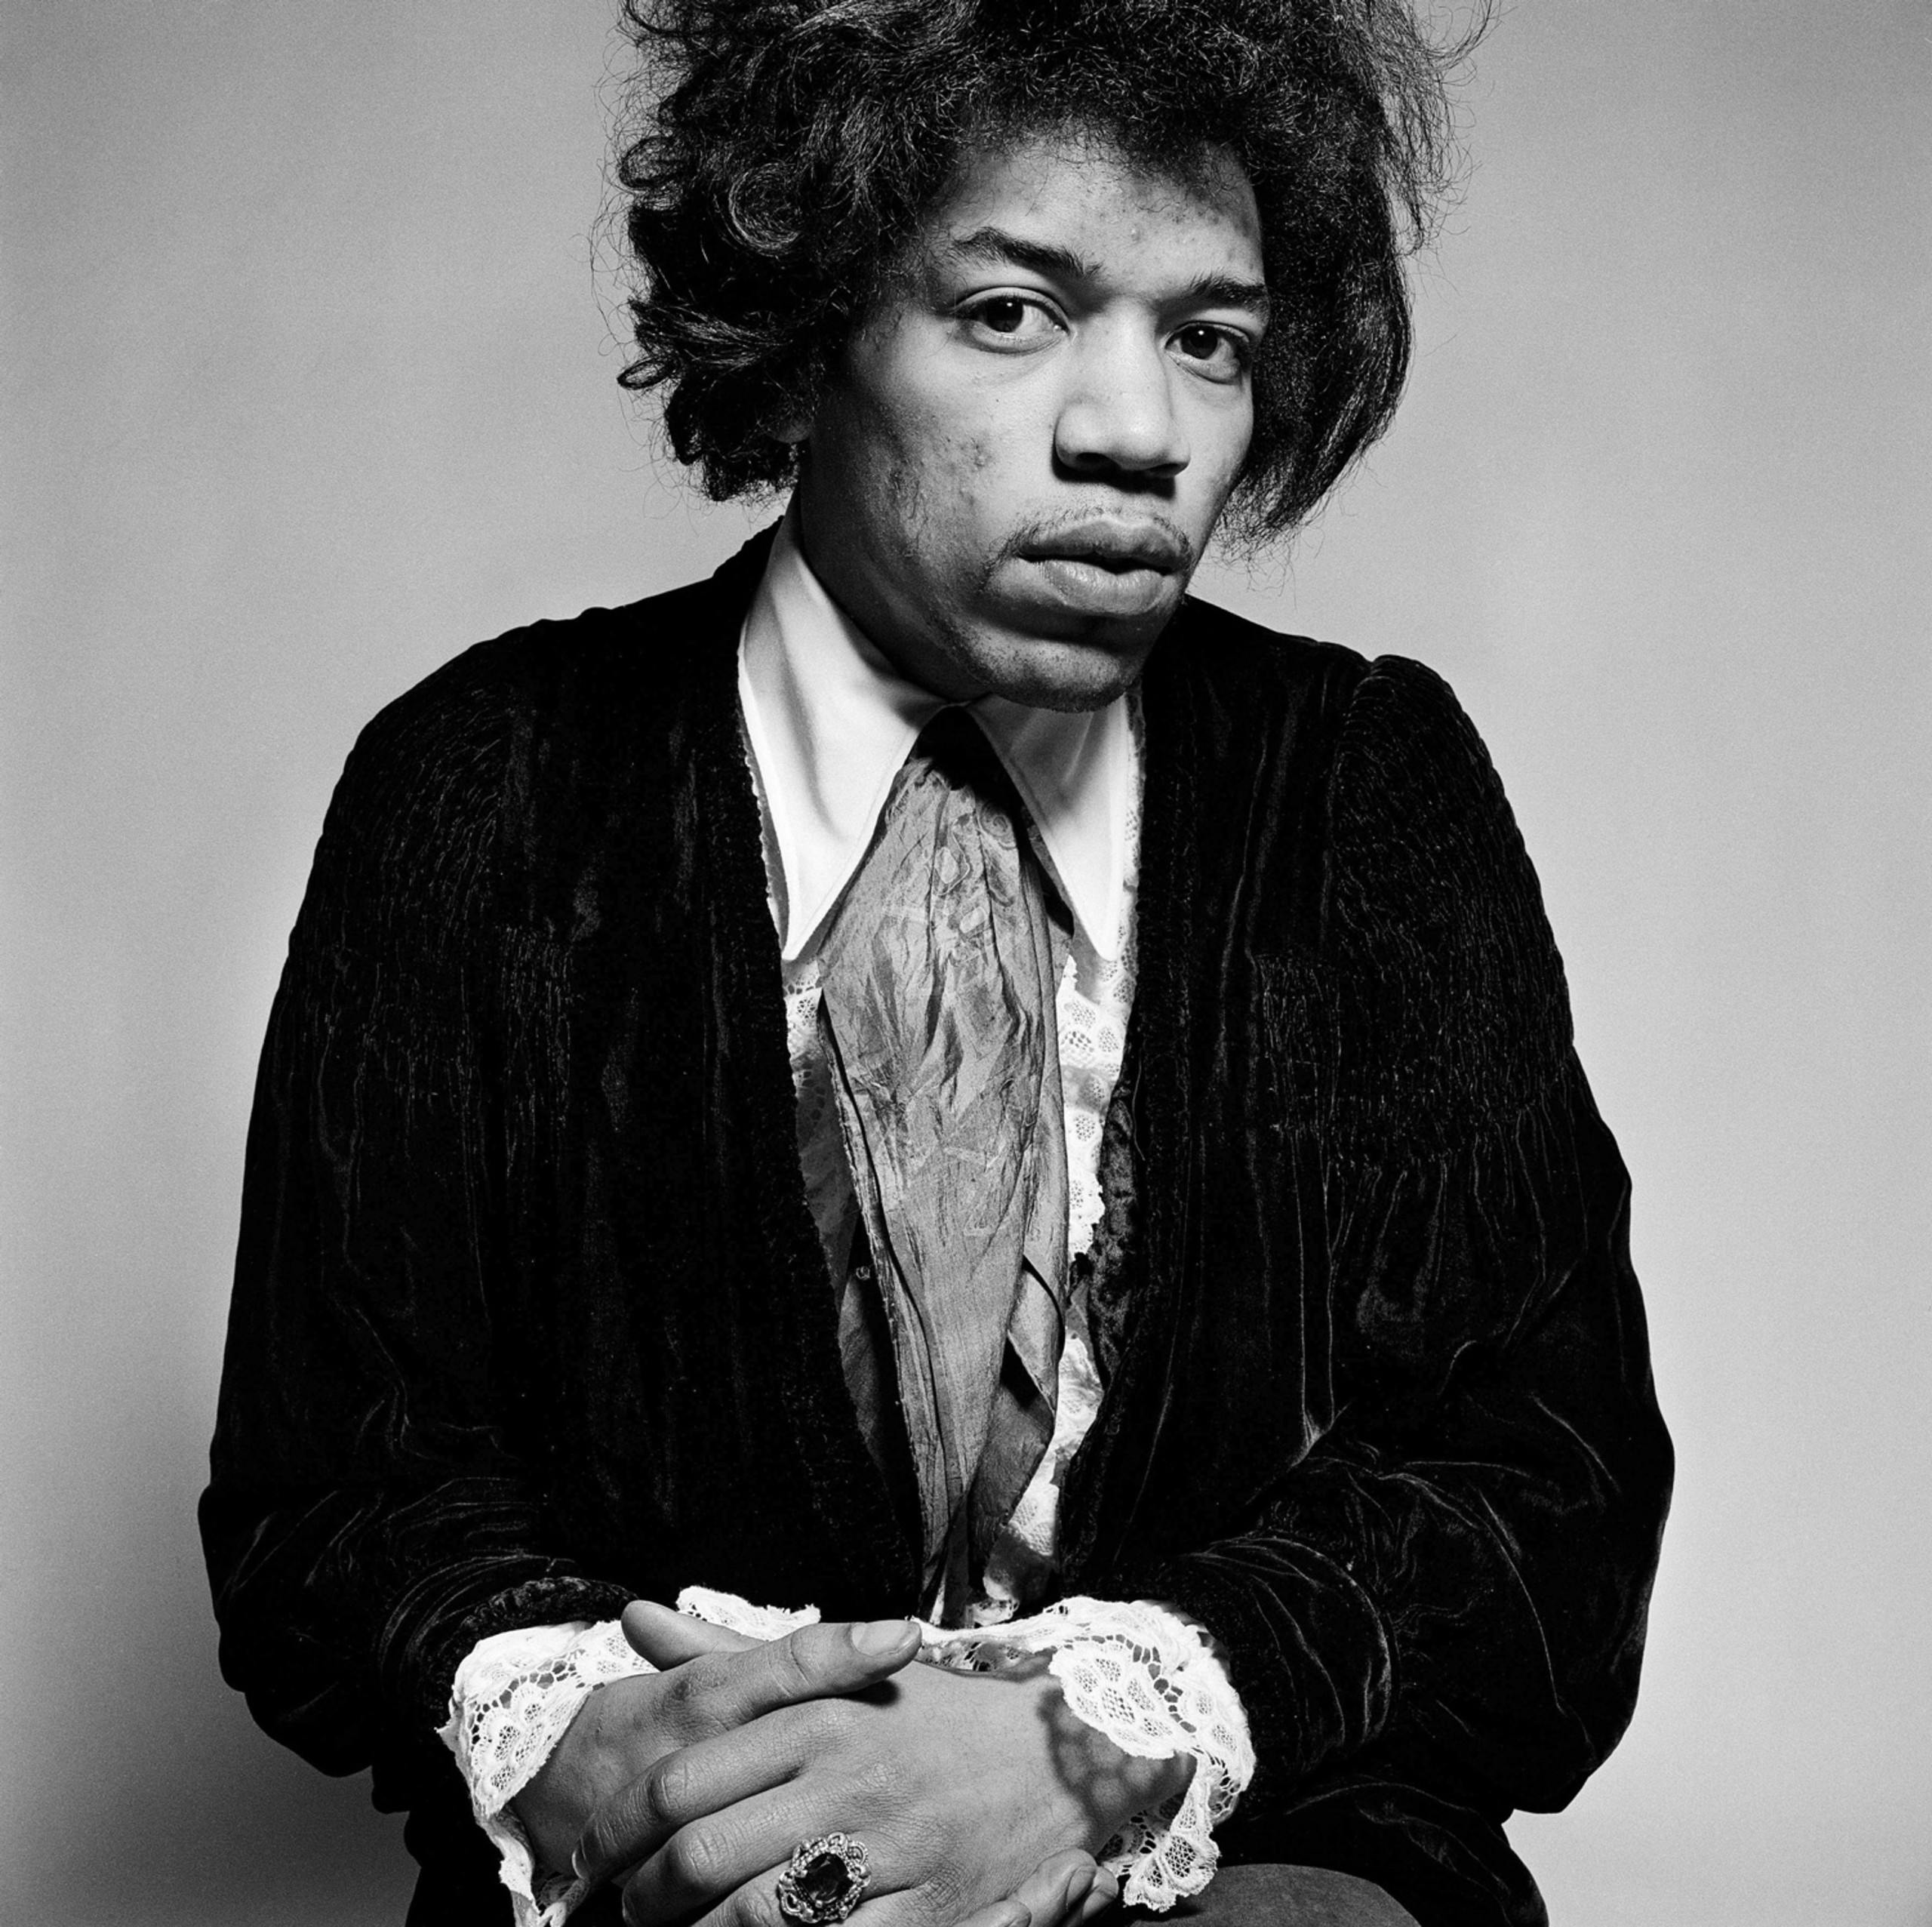 Gered Mankowitz | Capturing Music History with Hasselblad